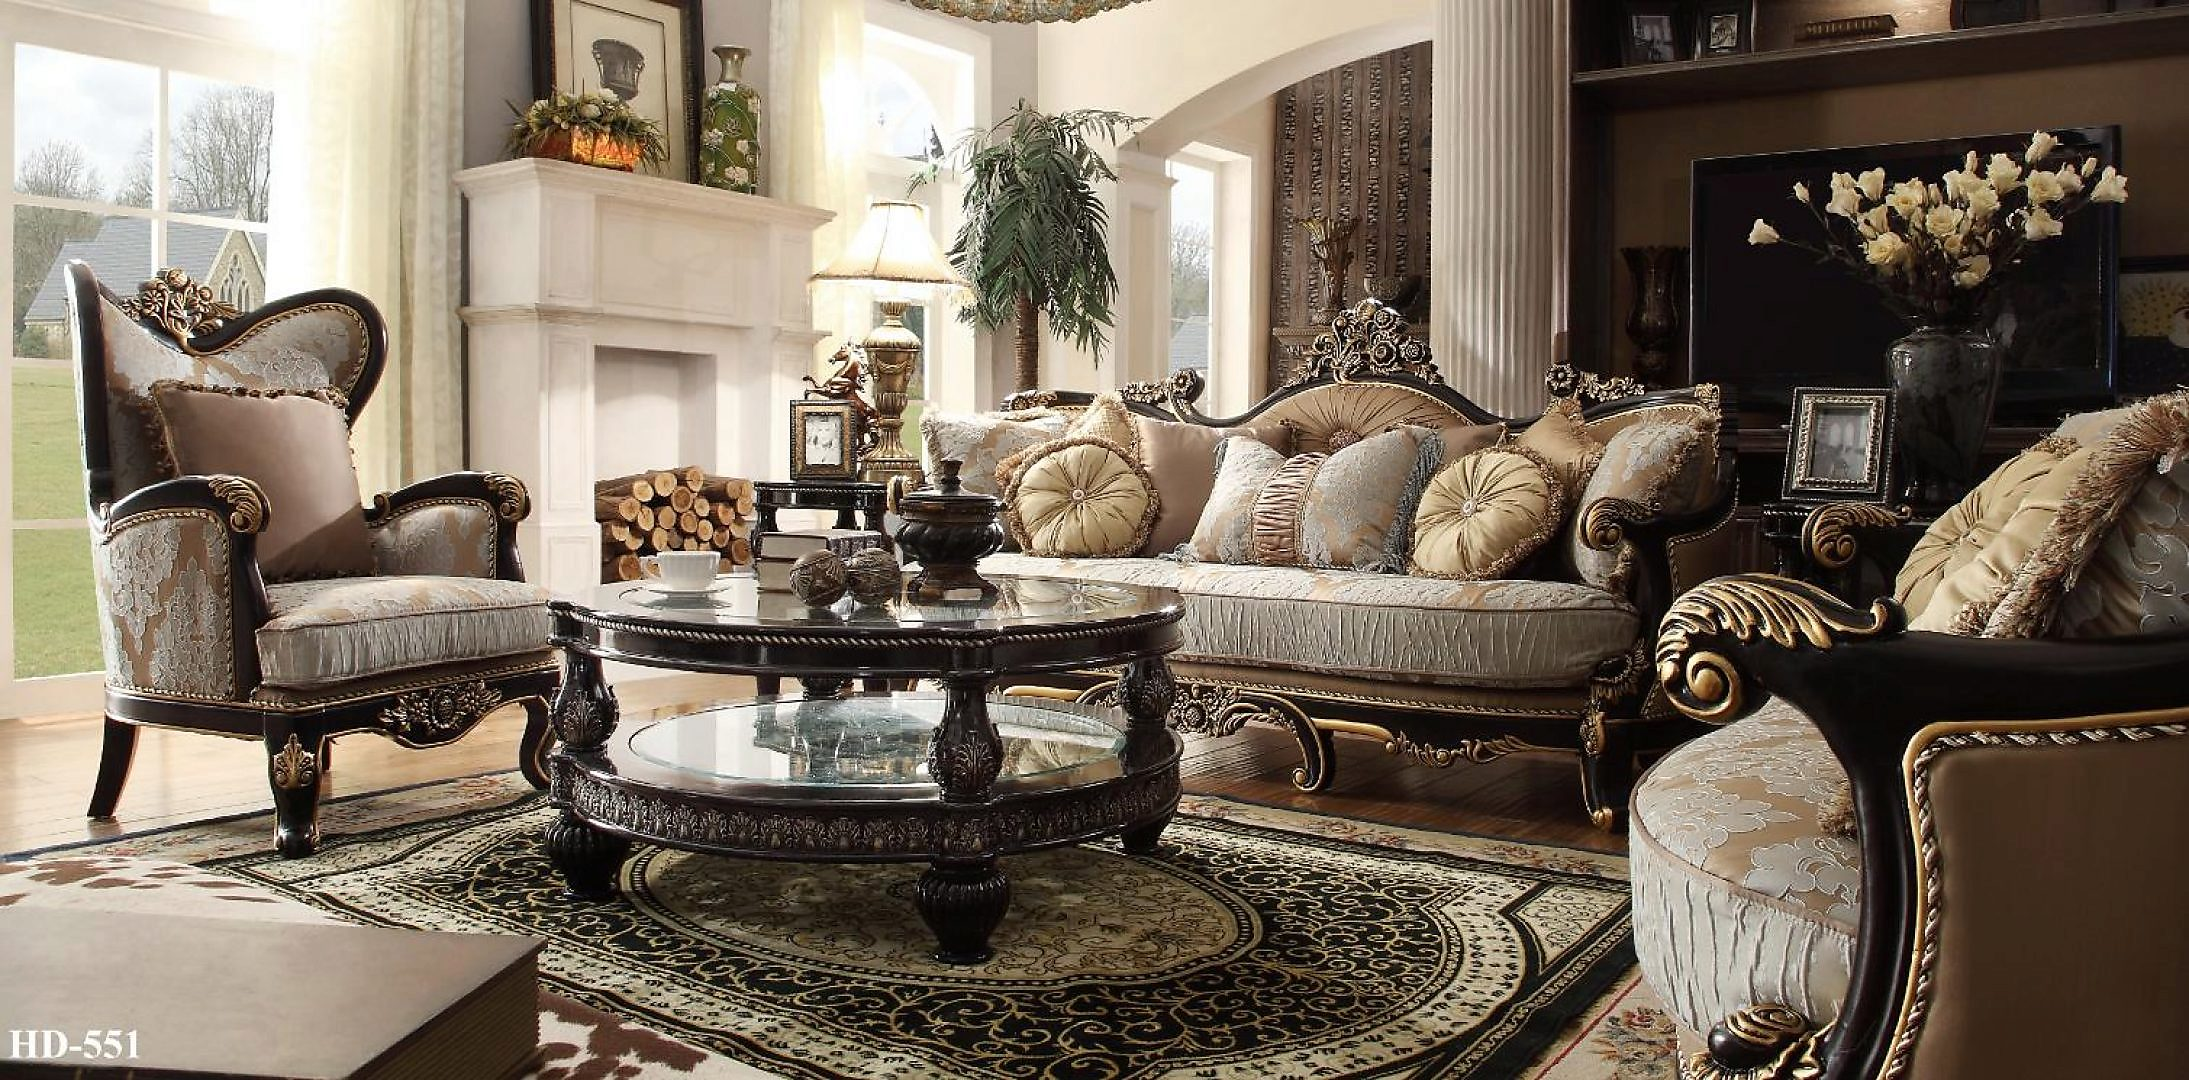 Traditional Victorian Luxury HD-551-SLC Sofa Set in Gold by Homey Design